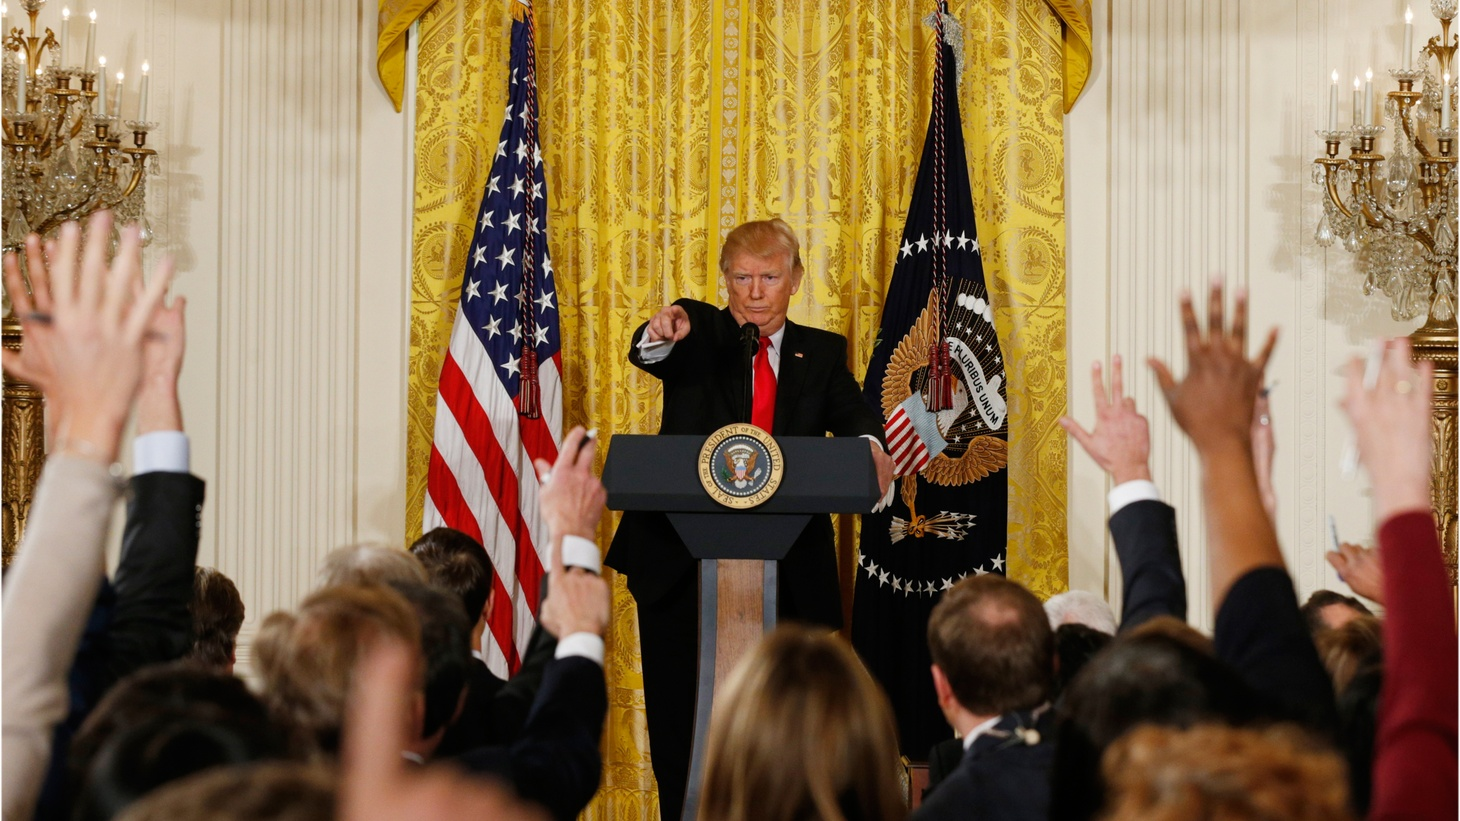 What happens to an executive branch when its bureaucrats routinely undermine it? We also speak with local Trump supporters about their reactions to yesterday's press conference and to the president's first month in office.